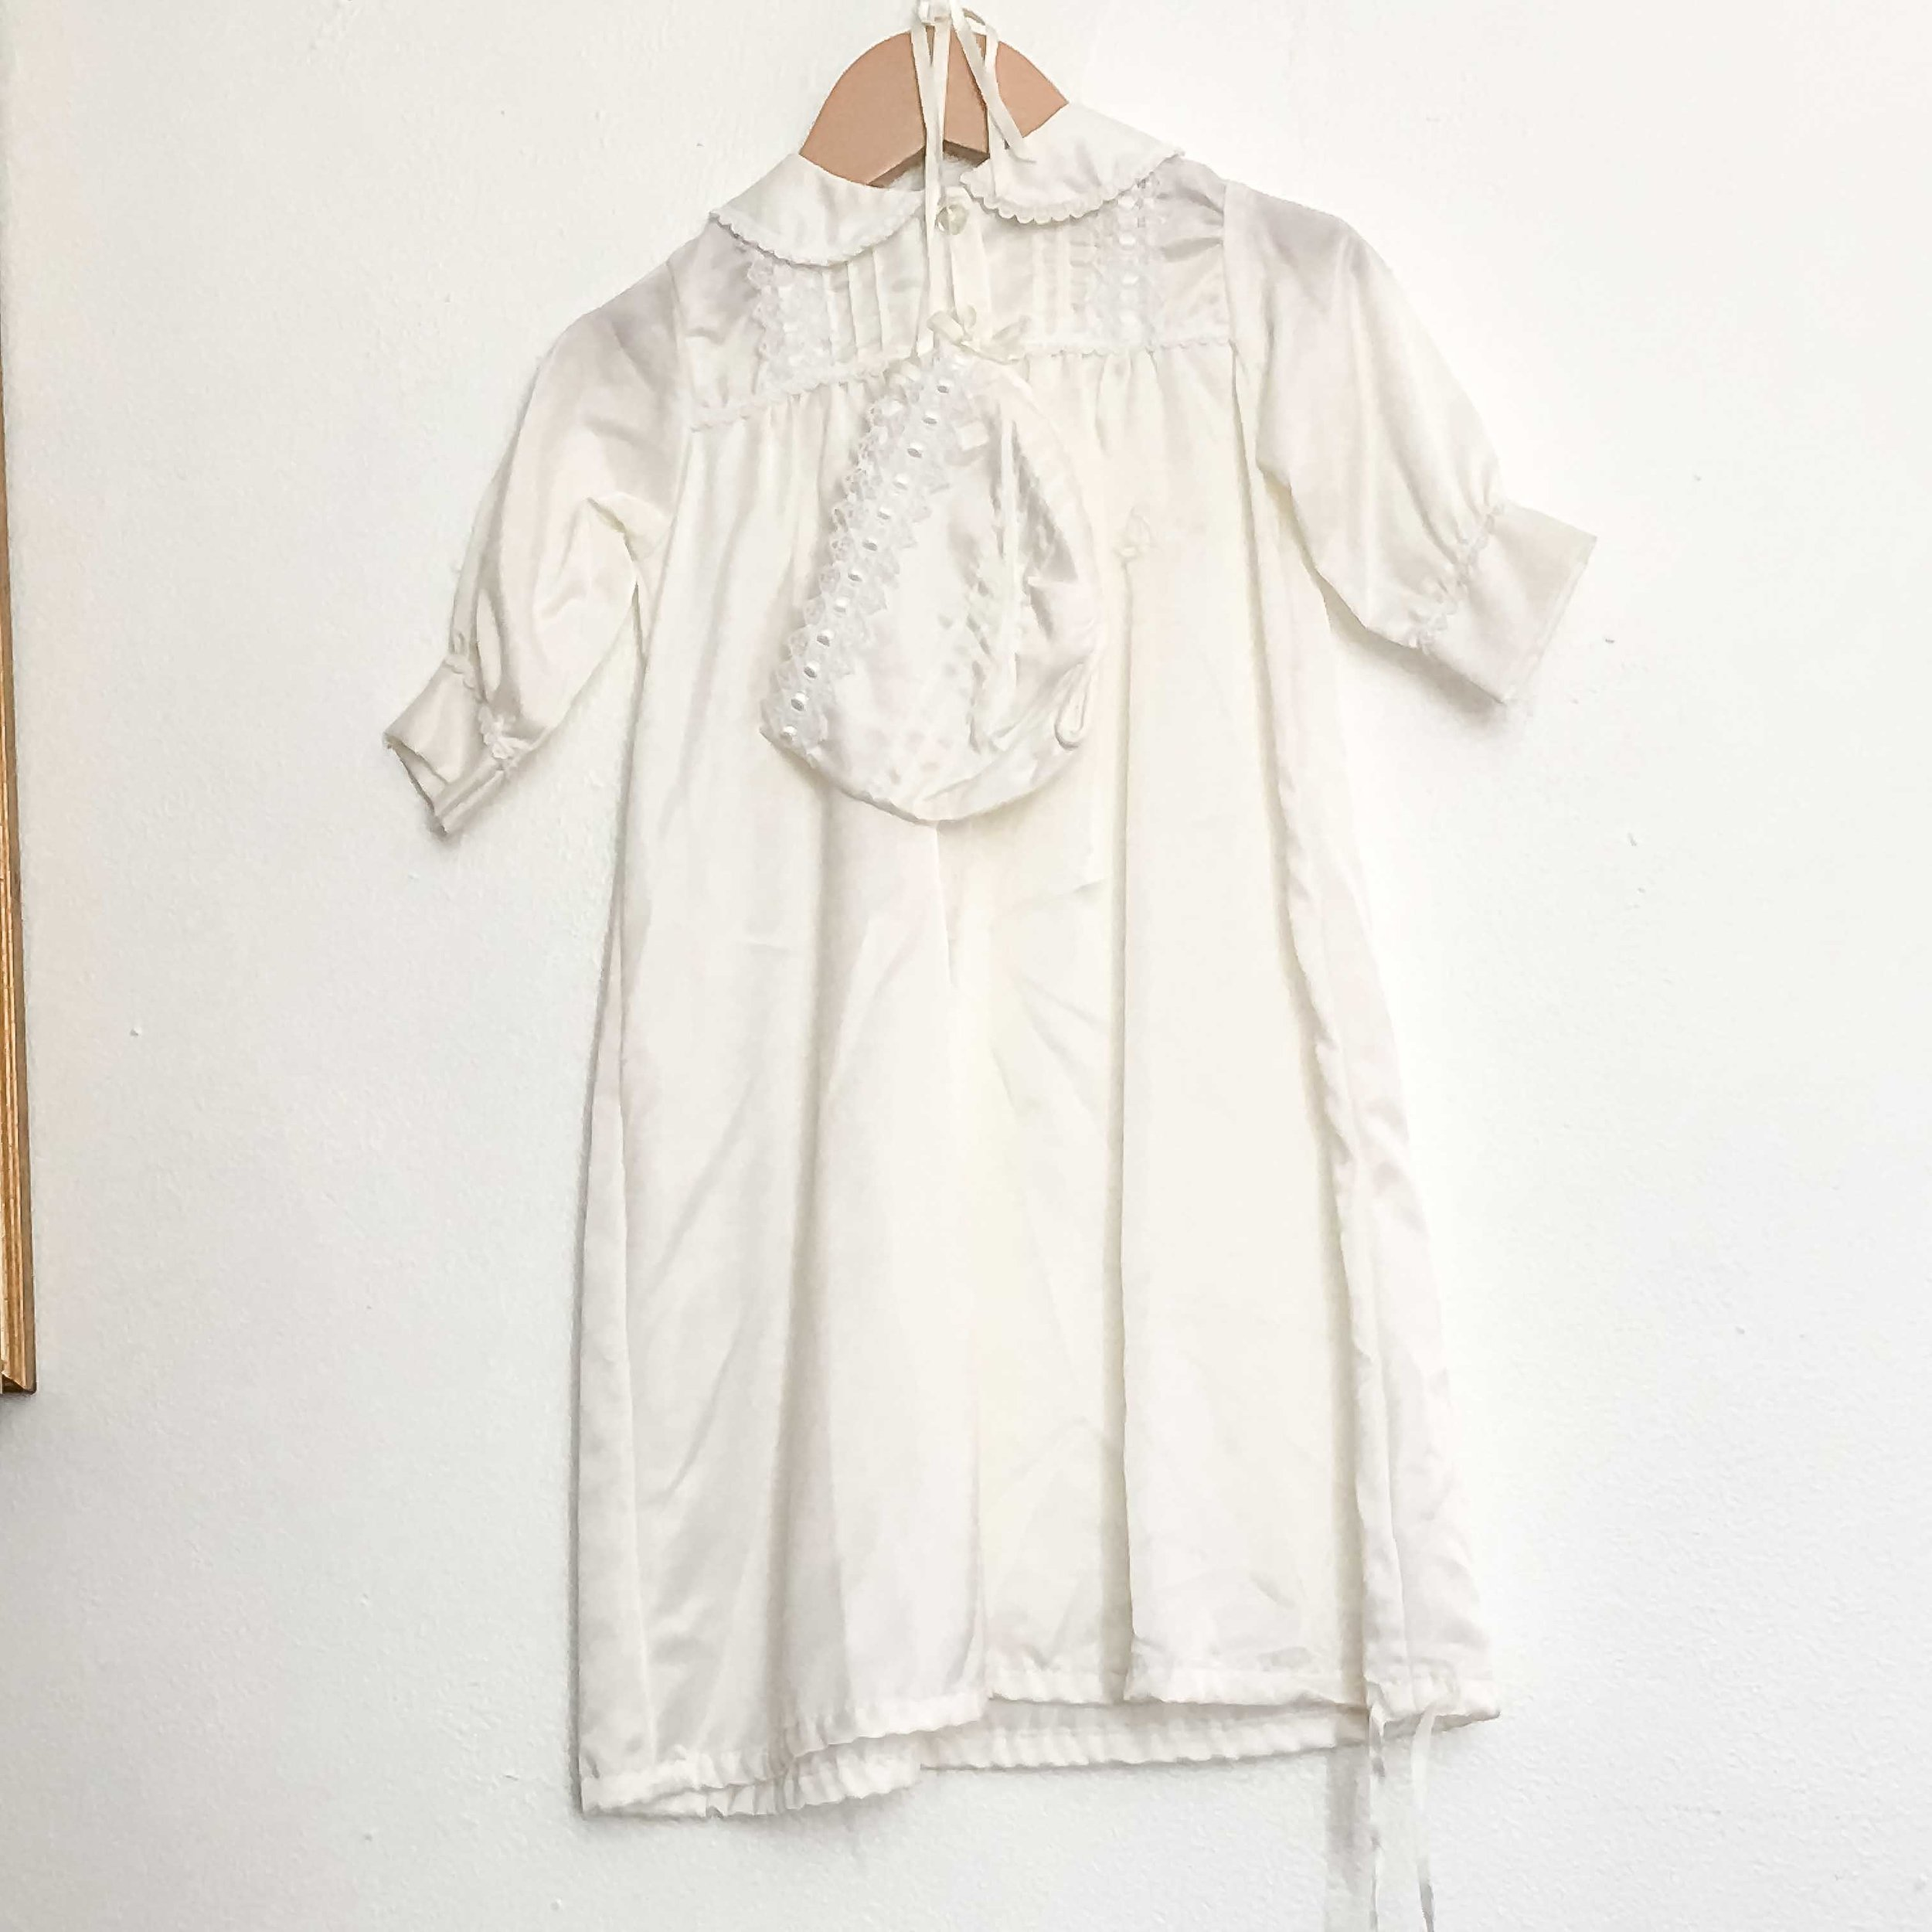 ORPCLOTHES-41.jpg